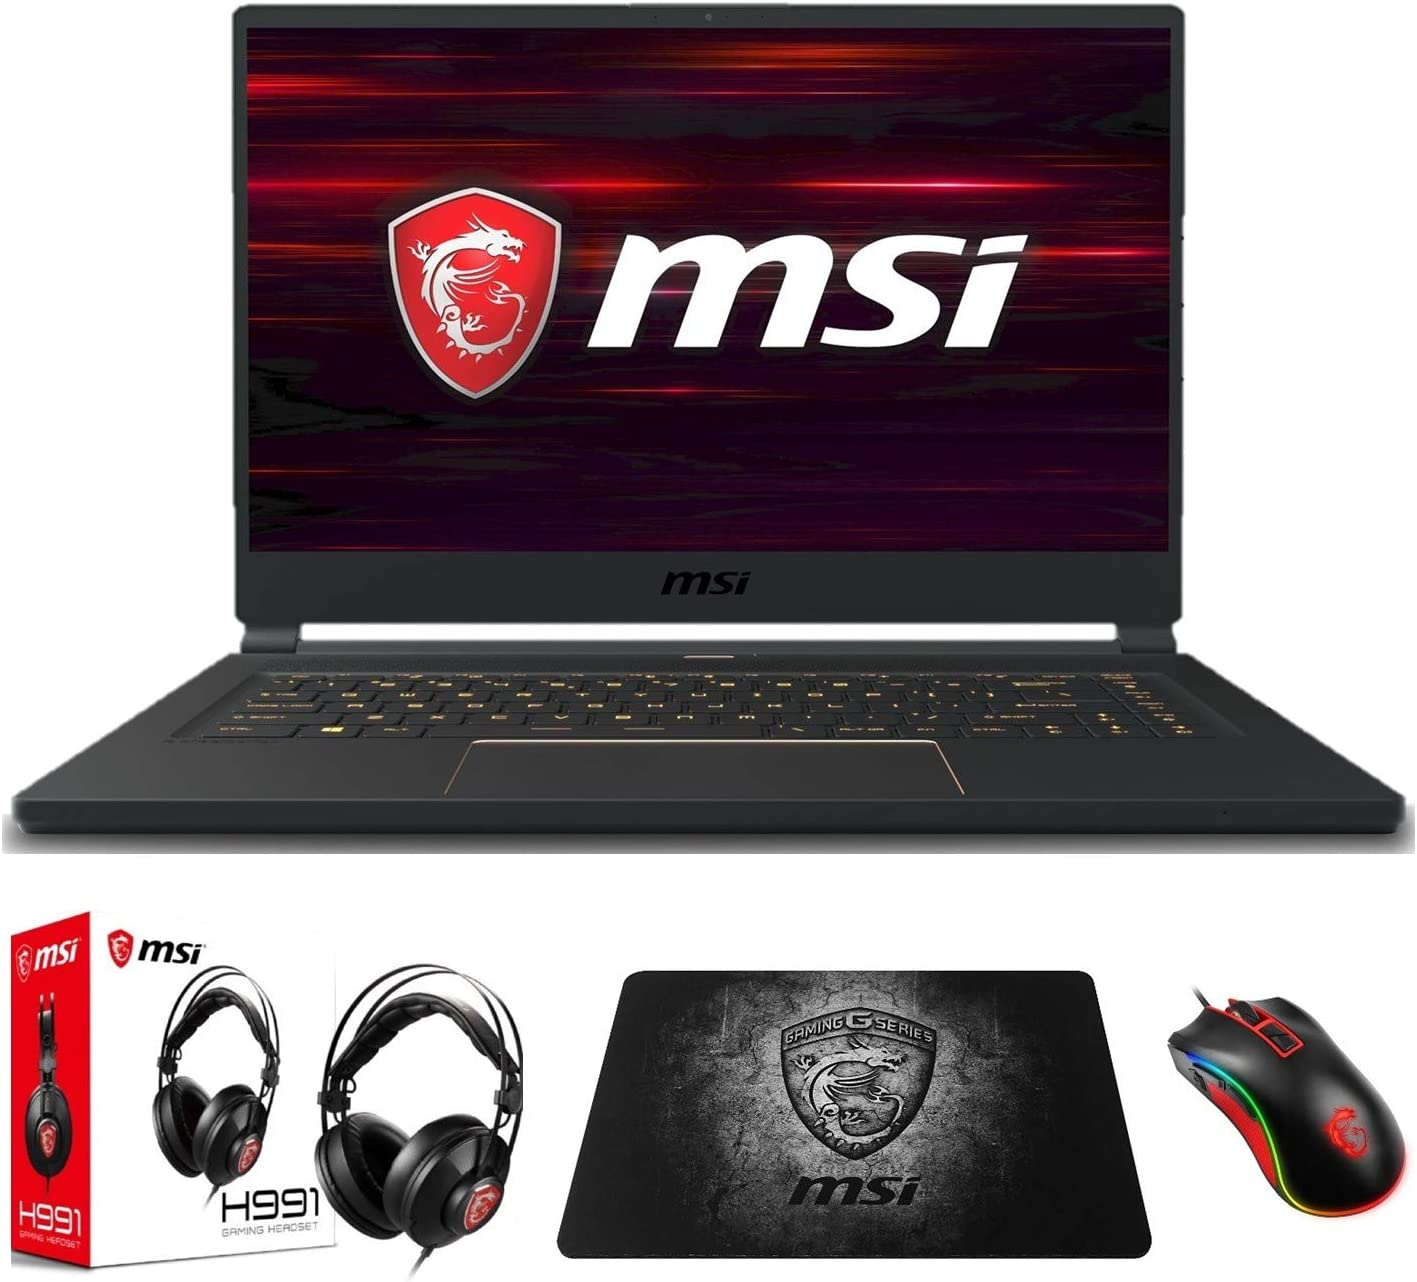 "MSI GS65 Stealth-1668 (i7-9750H, 16GB RAM, 512GB NVMe SSD, GTX1660Ti 6GB, 15.6"" Full HD 144Hz 3ms, Windows 10) VR Ready Gaming Notebook"